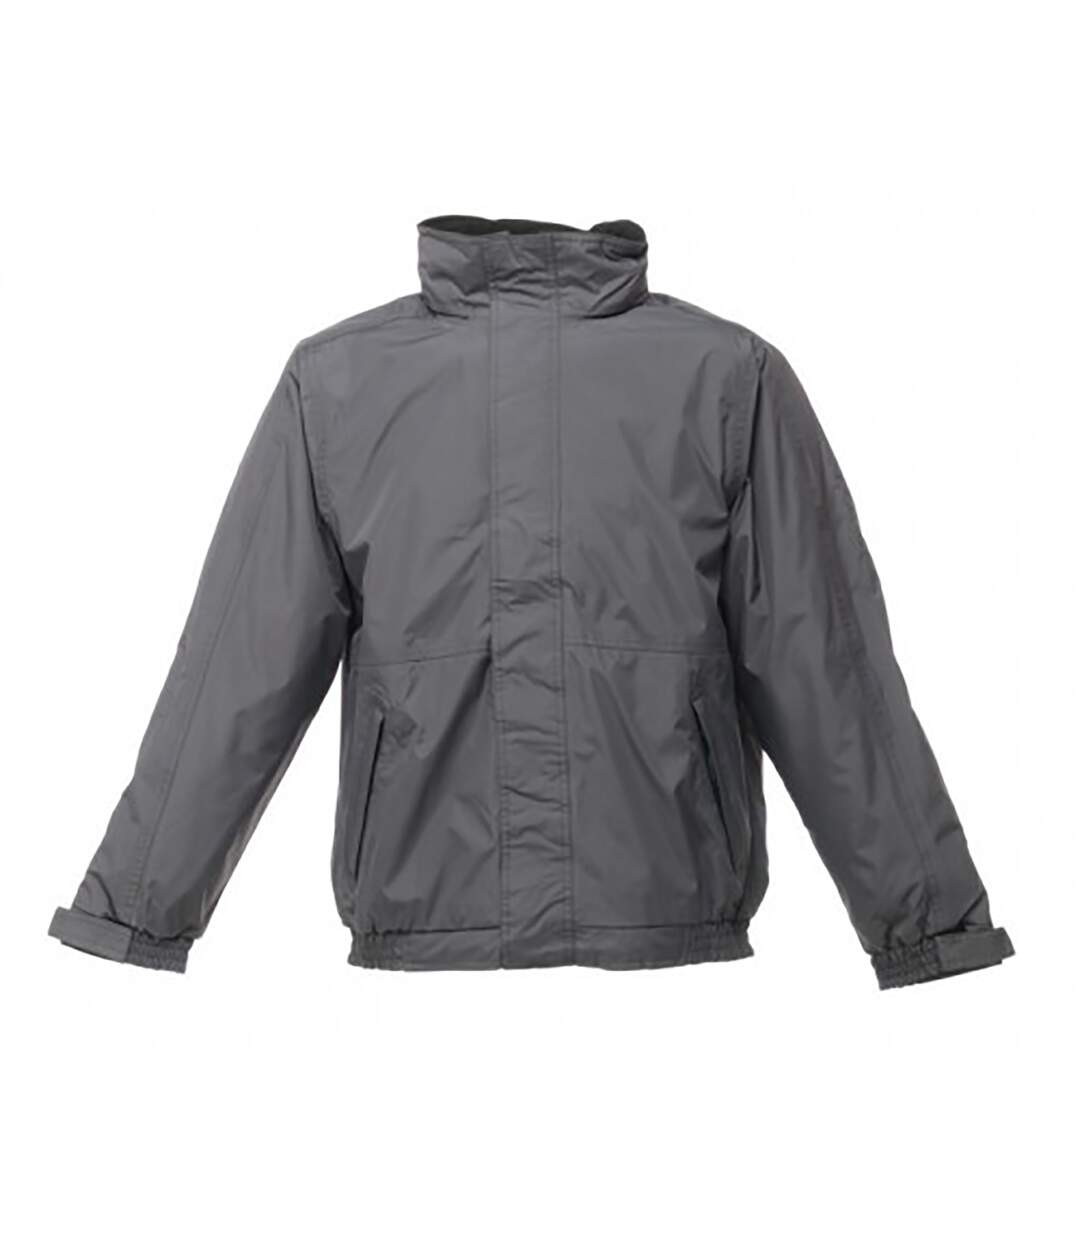 Regatta Dover Waterproof Windproof Jacket (Thermo-Guard Insulation) (Black/Ash) - UTRG1425